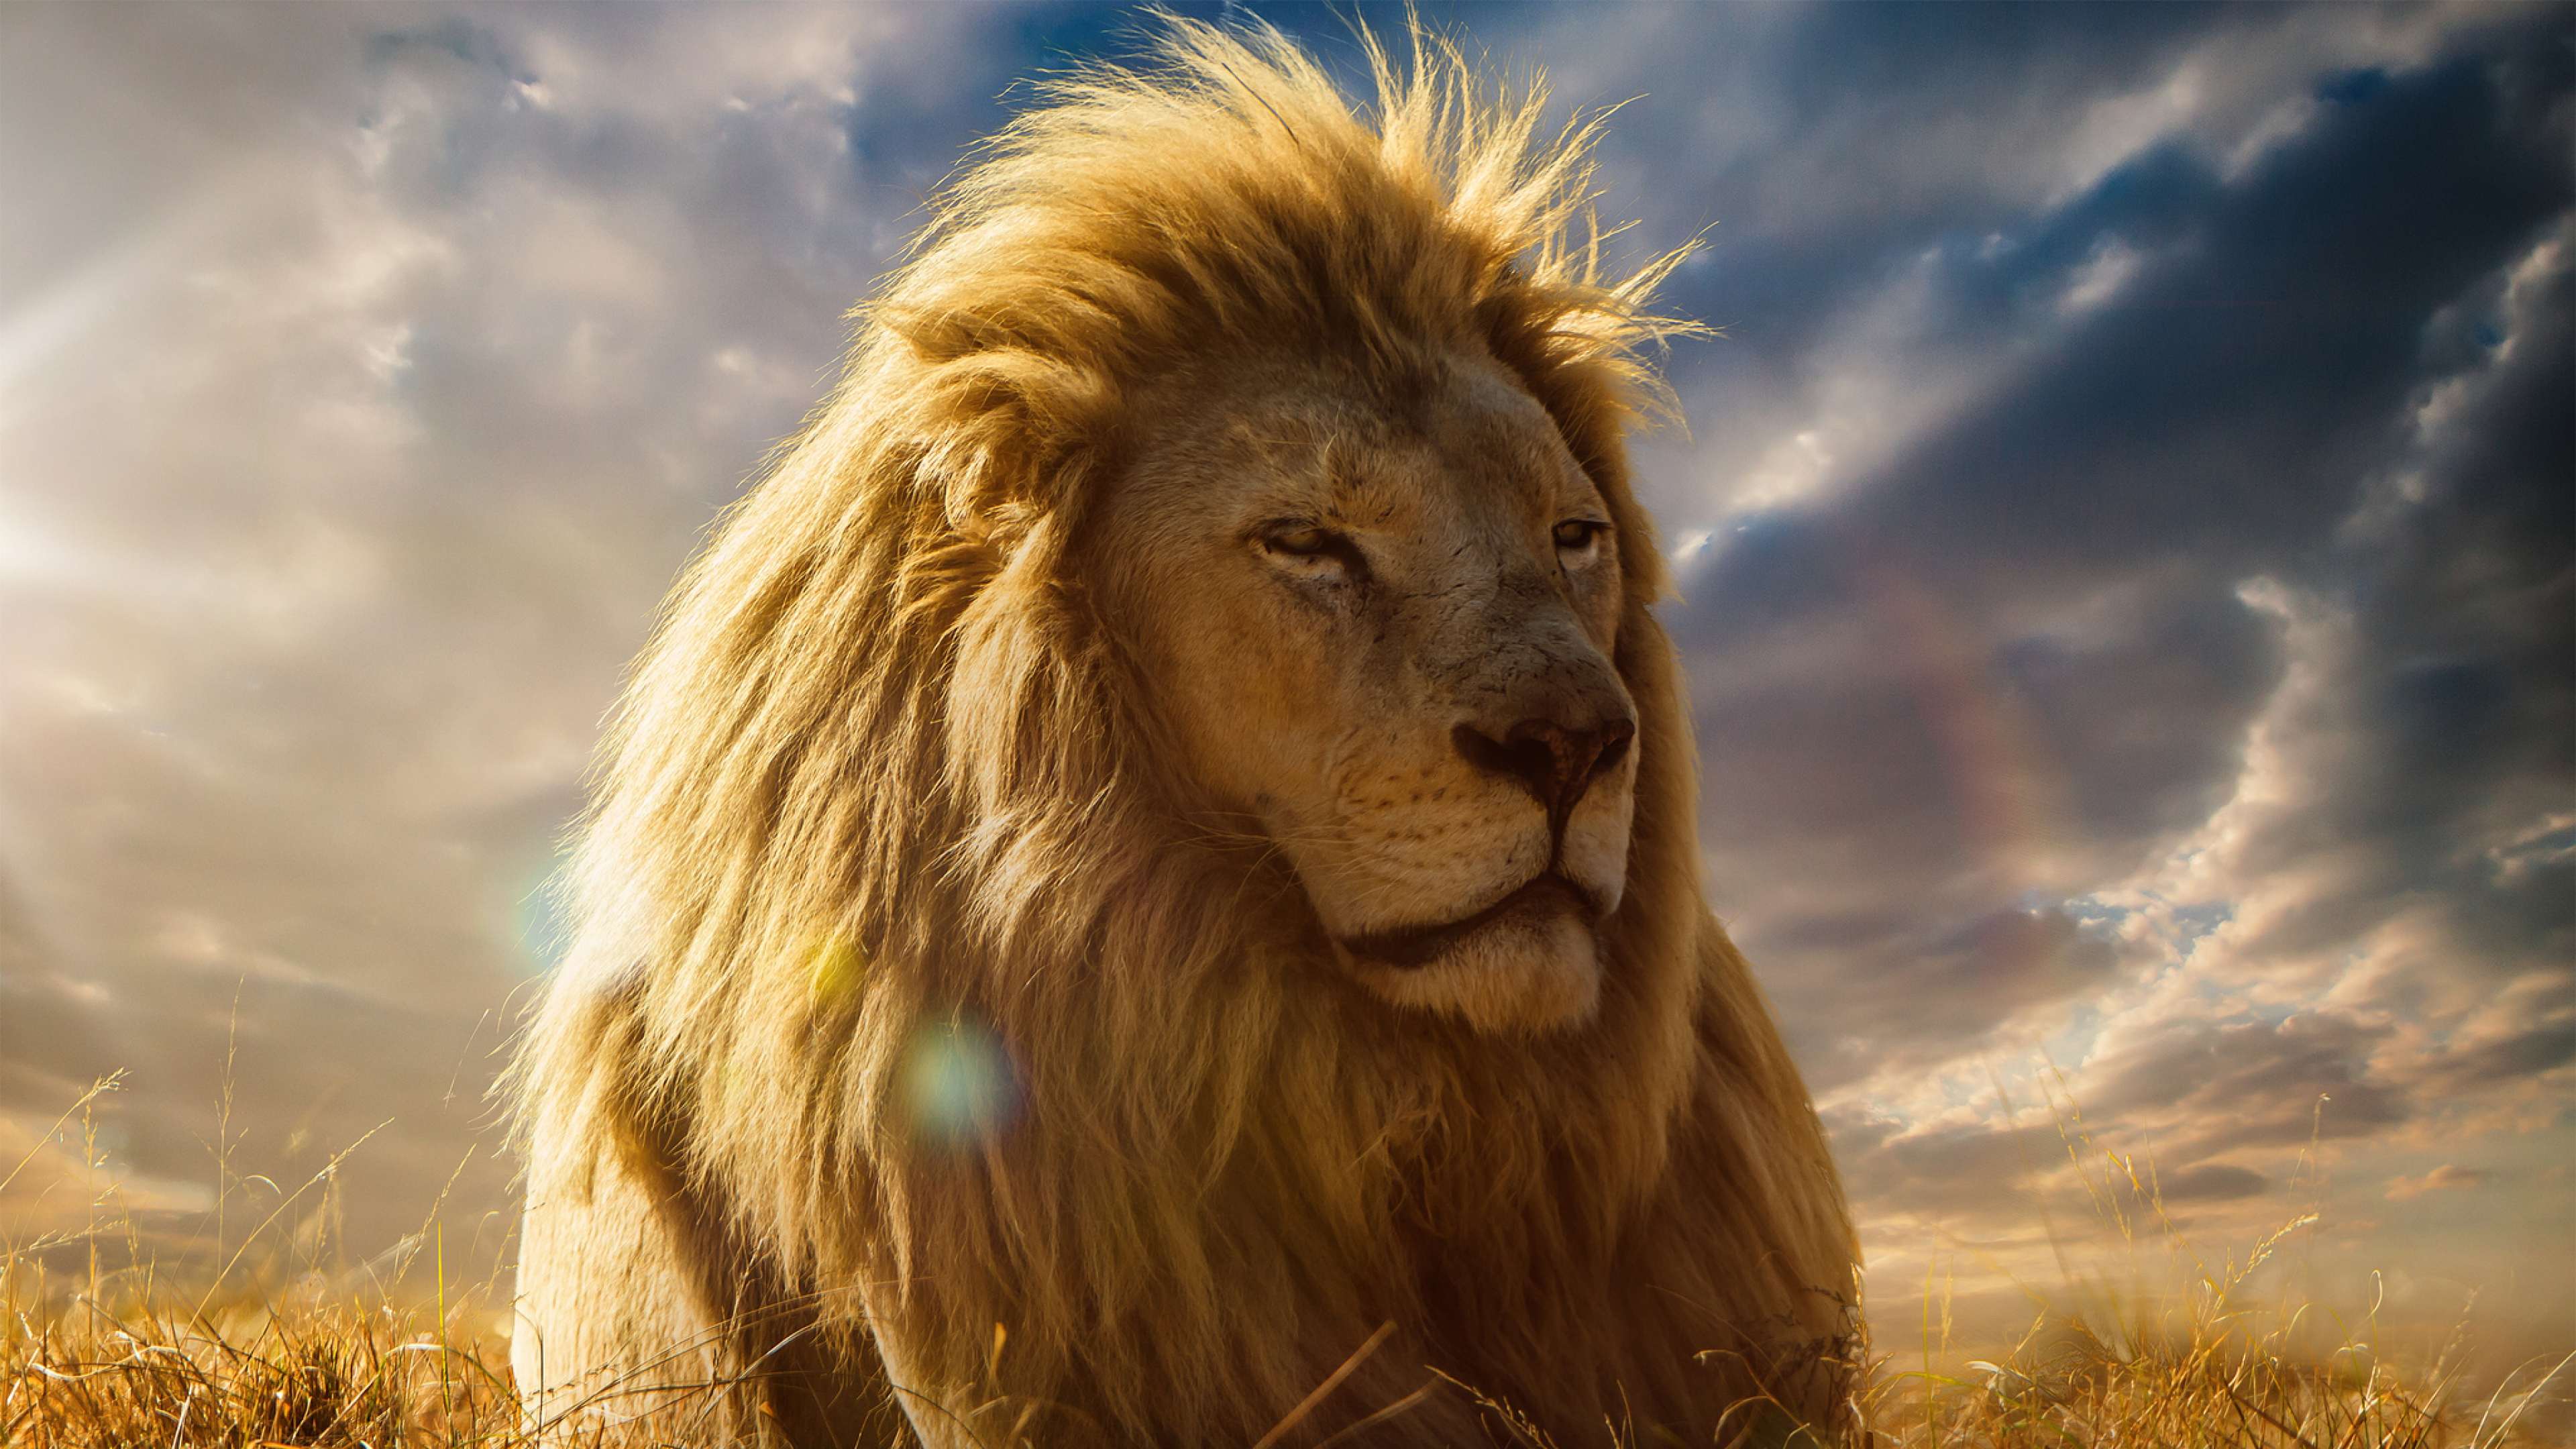 Most Inspiring Wallpaper Logo Lion - lion-king-4k-hd  Perfect Image Reference_366112.jpg